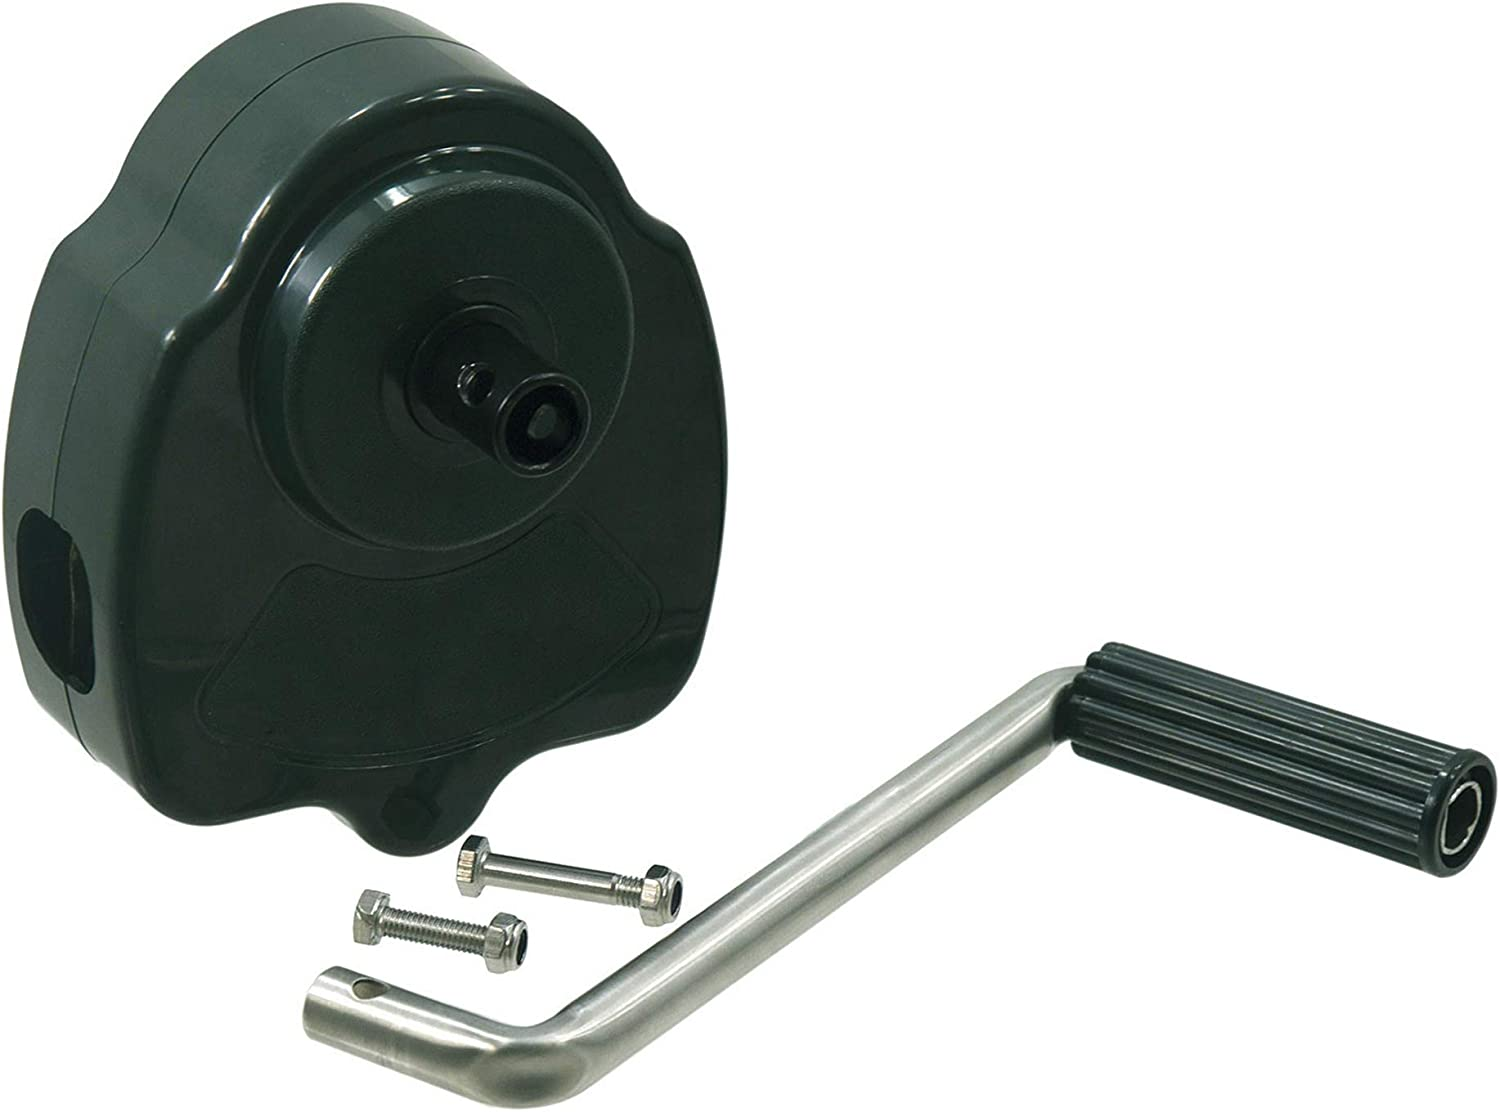 Easy to Adjust The Greenhouse Temperature KLLsmDesign Upgrade Greenhouse Sidewall Manual Hand Crank Winch for Greenhouse Ventilation,Greenhouse Film Raising//lowering Hand Crank Device